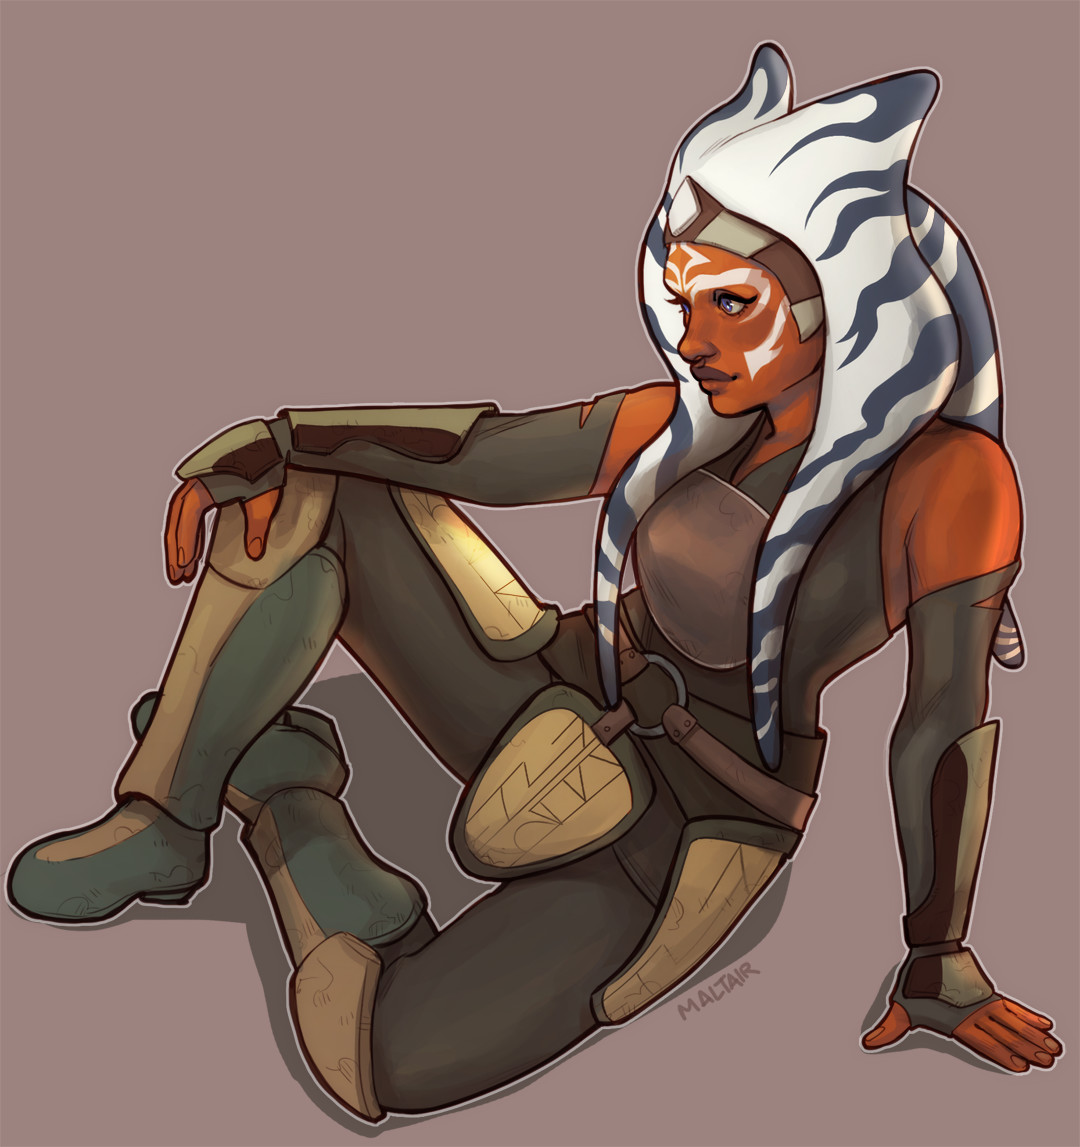 Star wars ahsoka cartoon porn